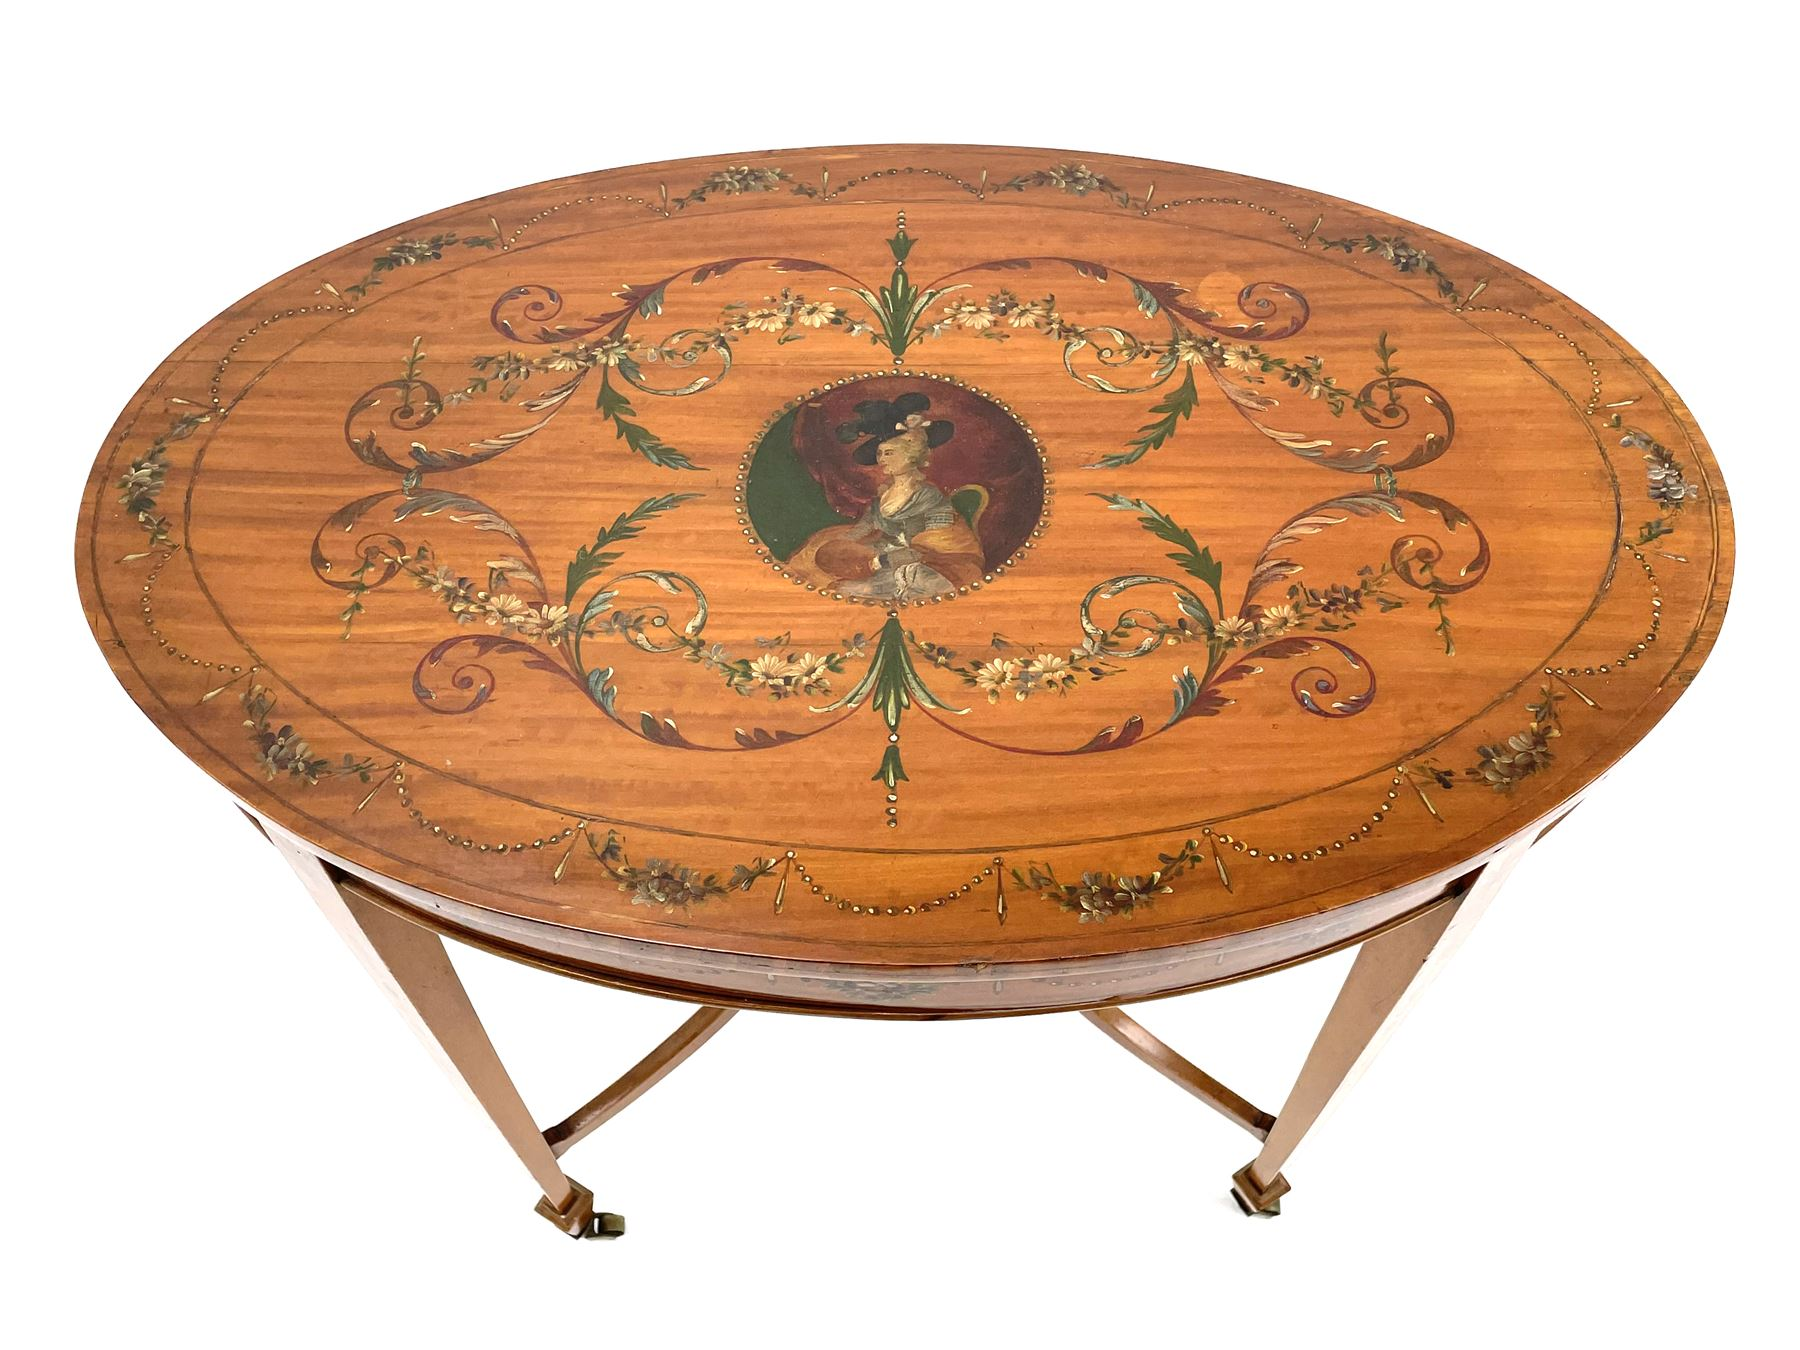 Edwardian Sheraton revival satinwood and painted centre table